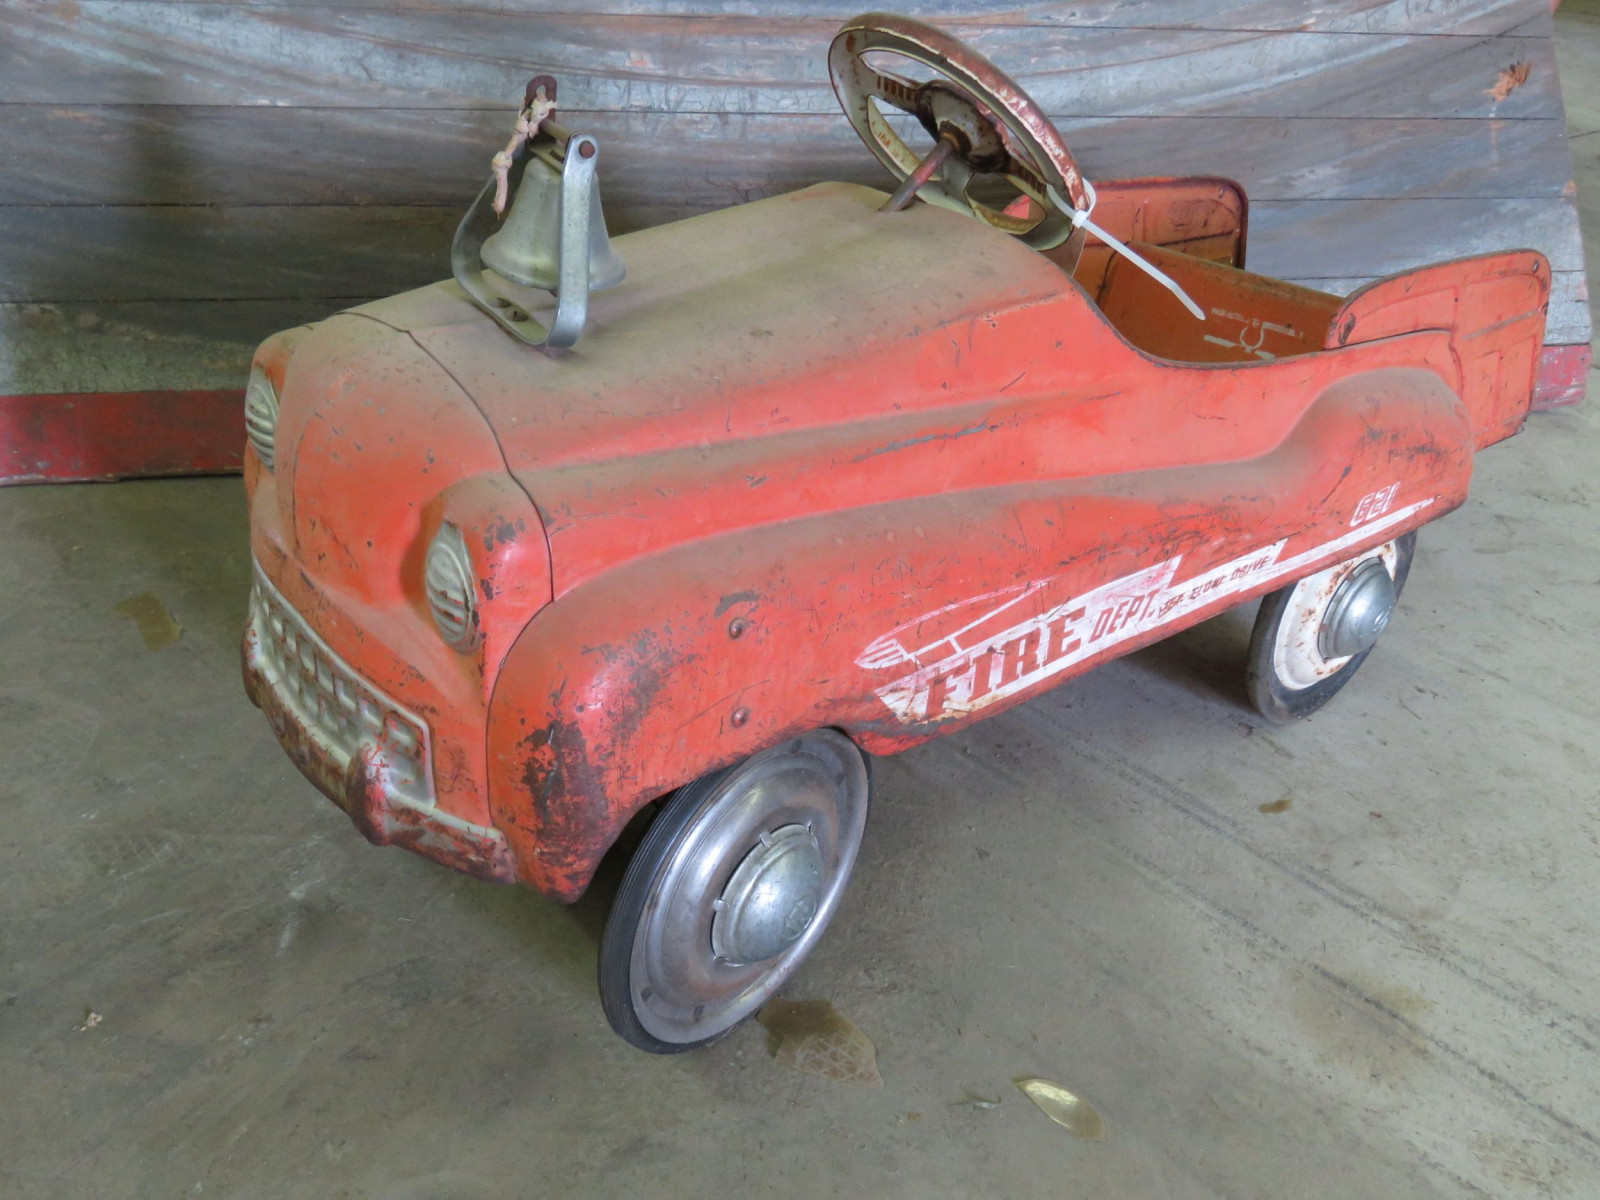 Murray 621 Fire Department vintage Pedal Car for Restore - Image 1